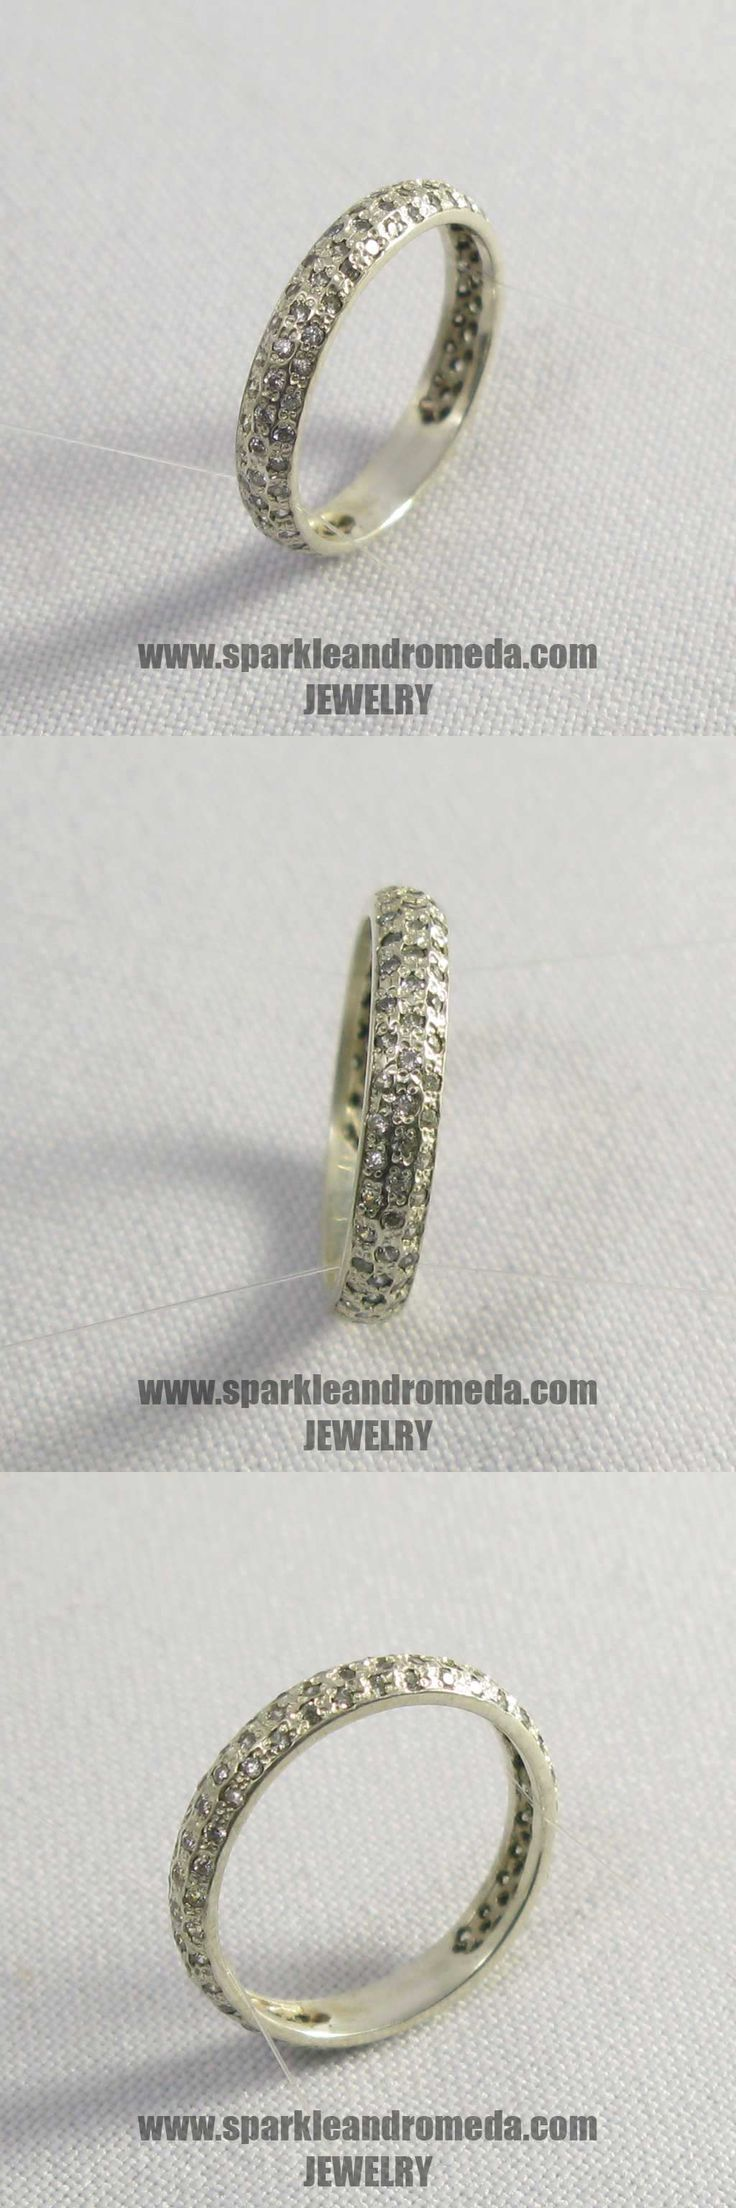 Sterling 925 silver ring with 88 round 1 mm white color cubic zirconia gemstones.